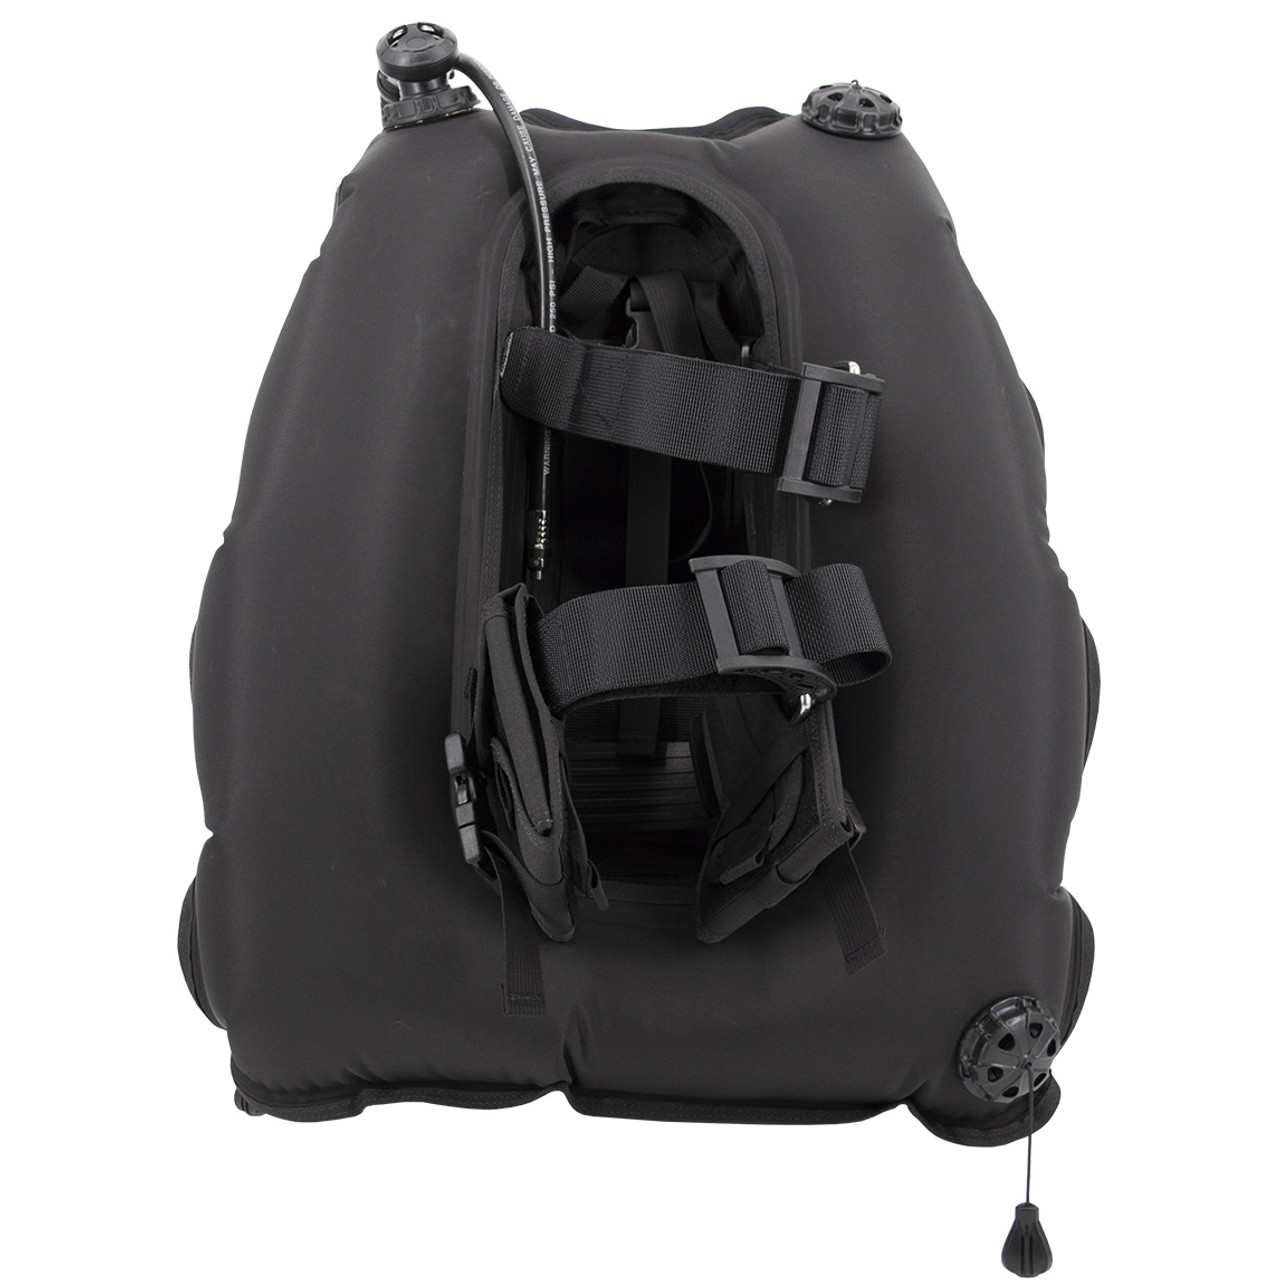 Sherwood CruX BCD Scuba Diving Buoyancy Compensator 40lb